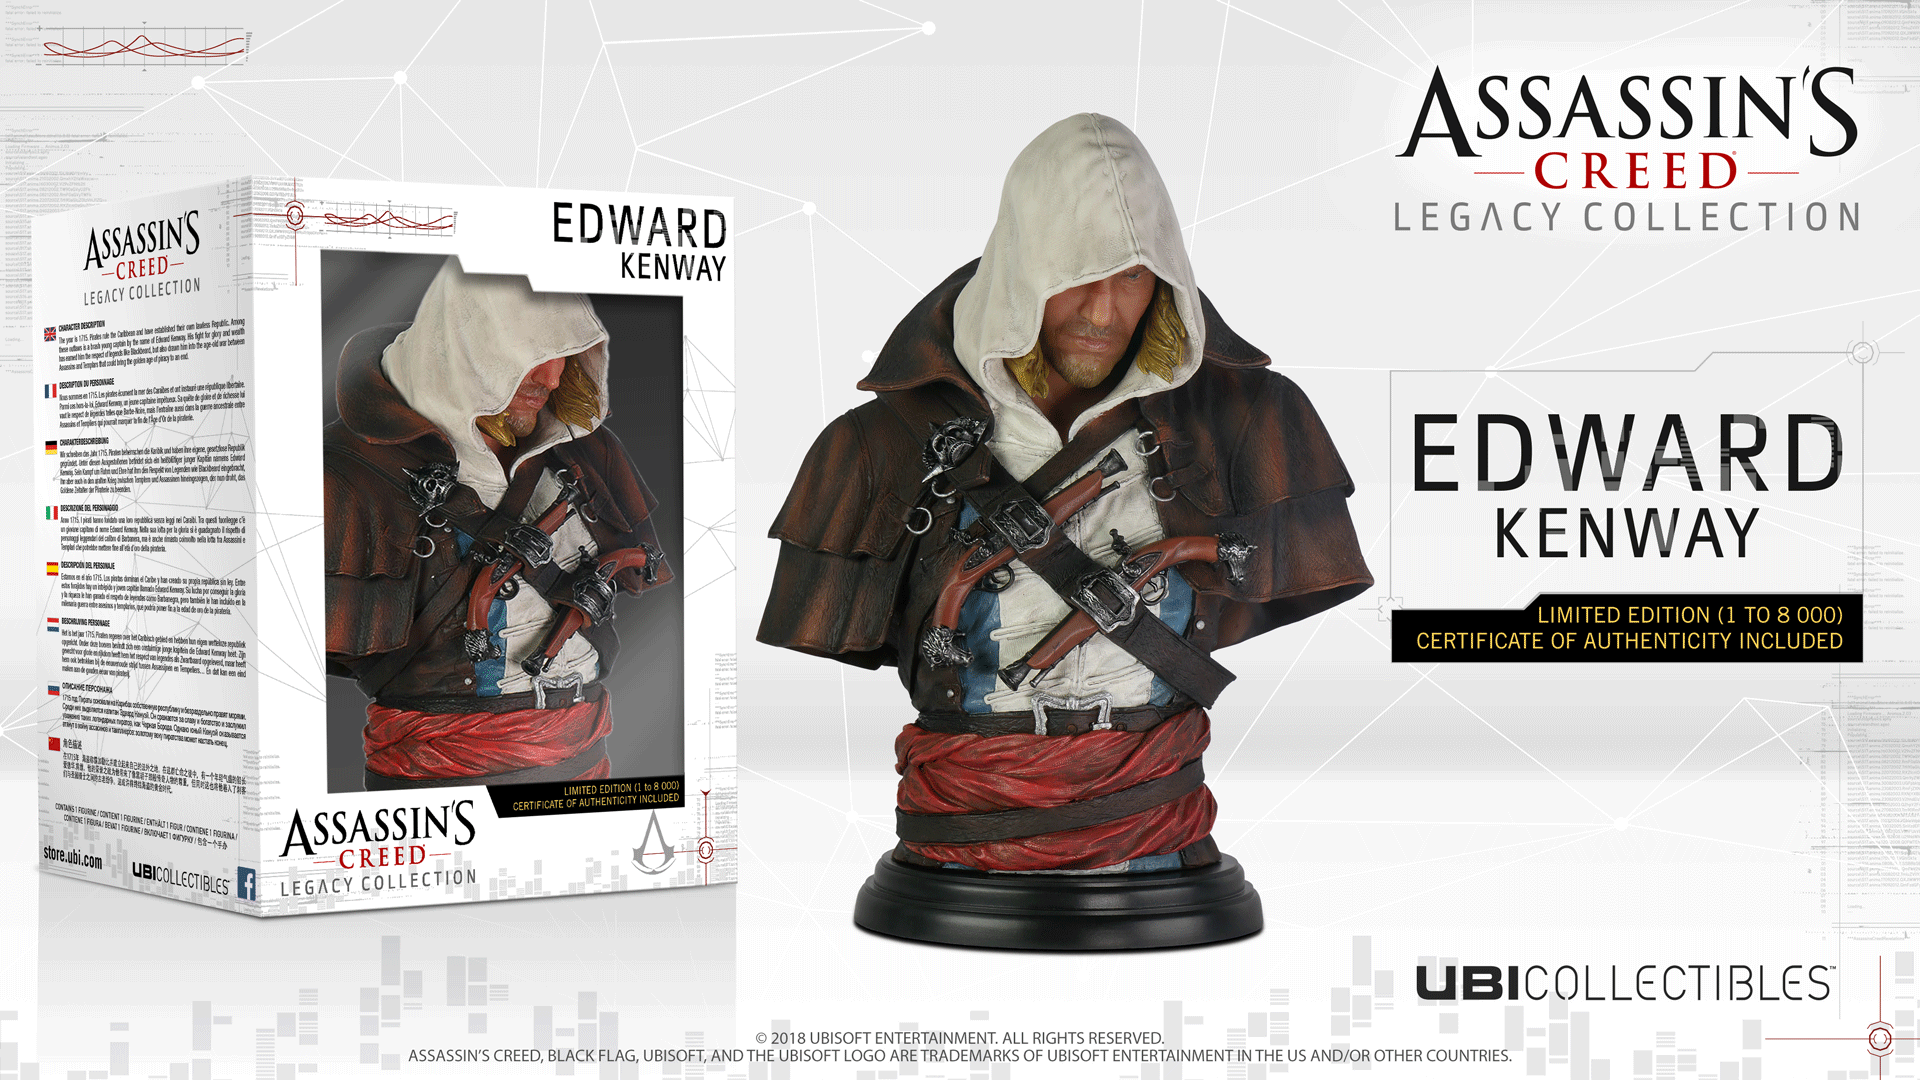 LEGACY COLLECTION: Edward Kenway